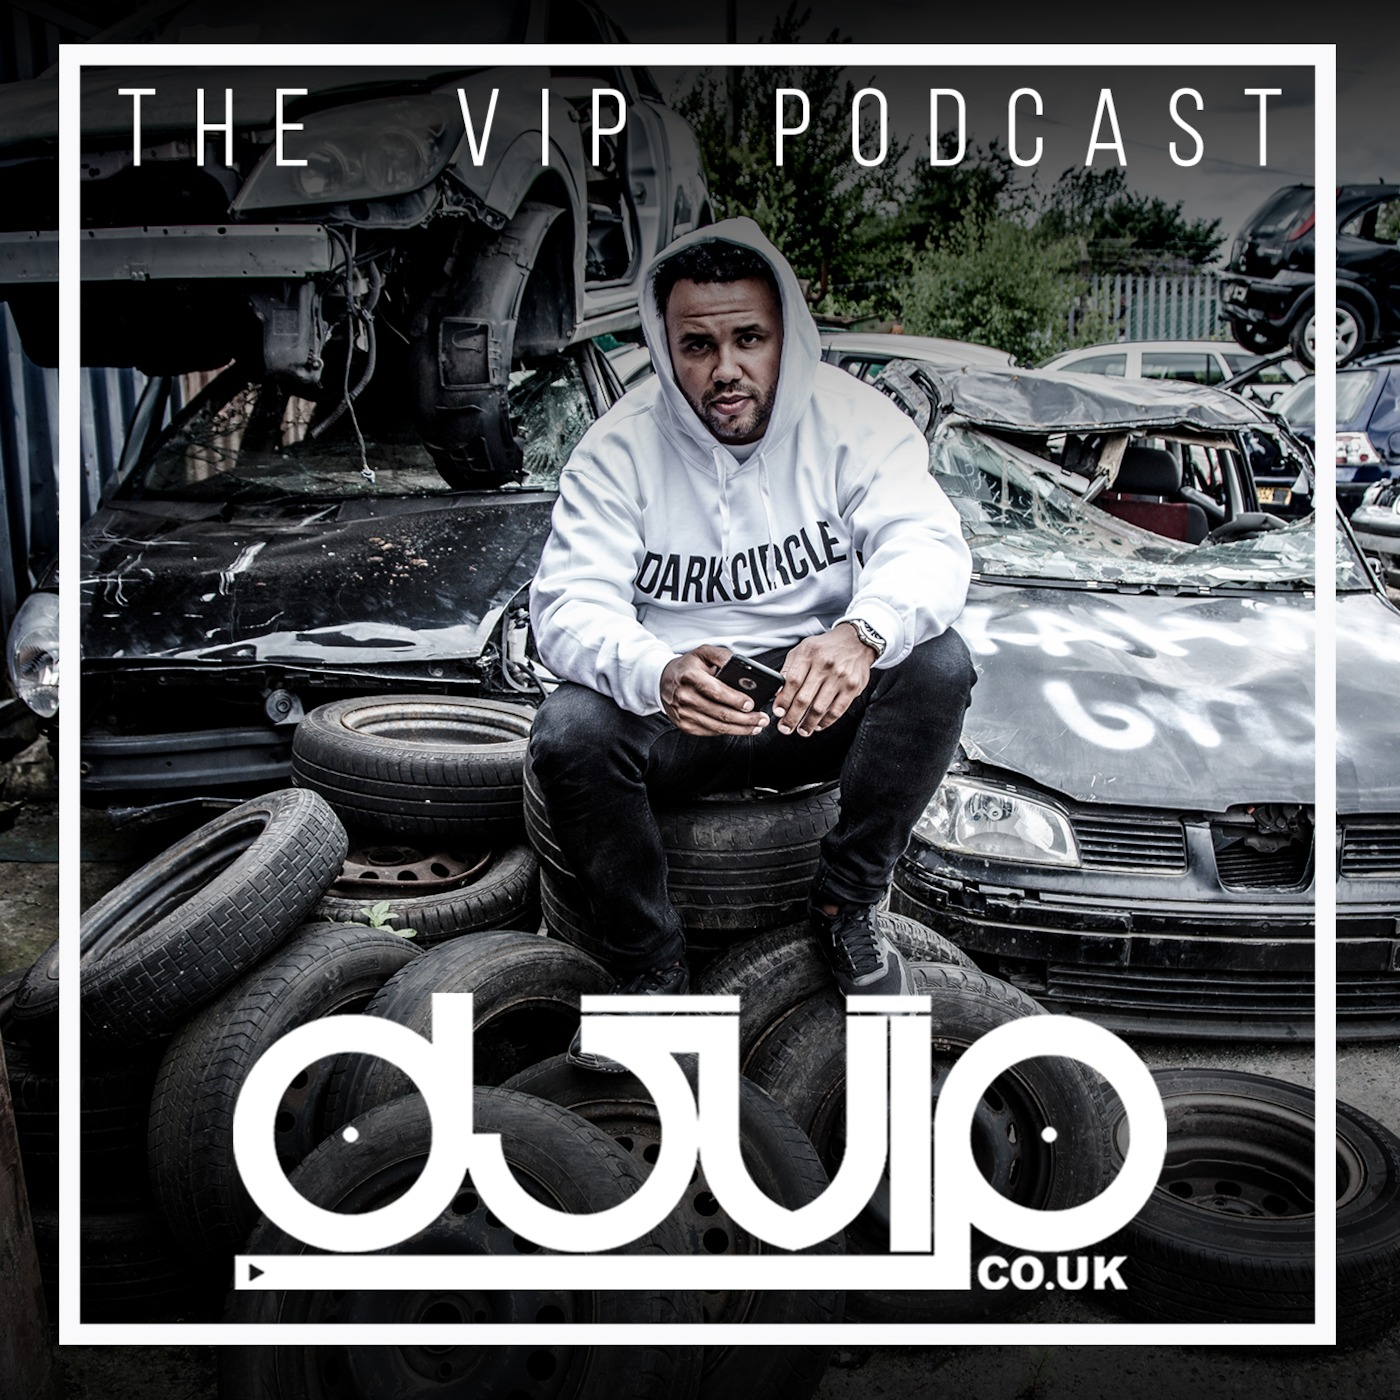 The VIP podcast